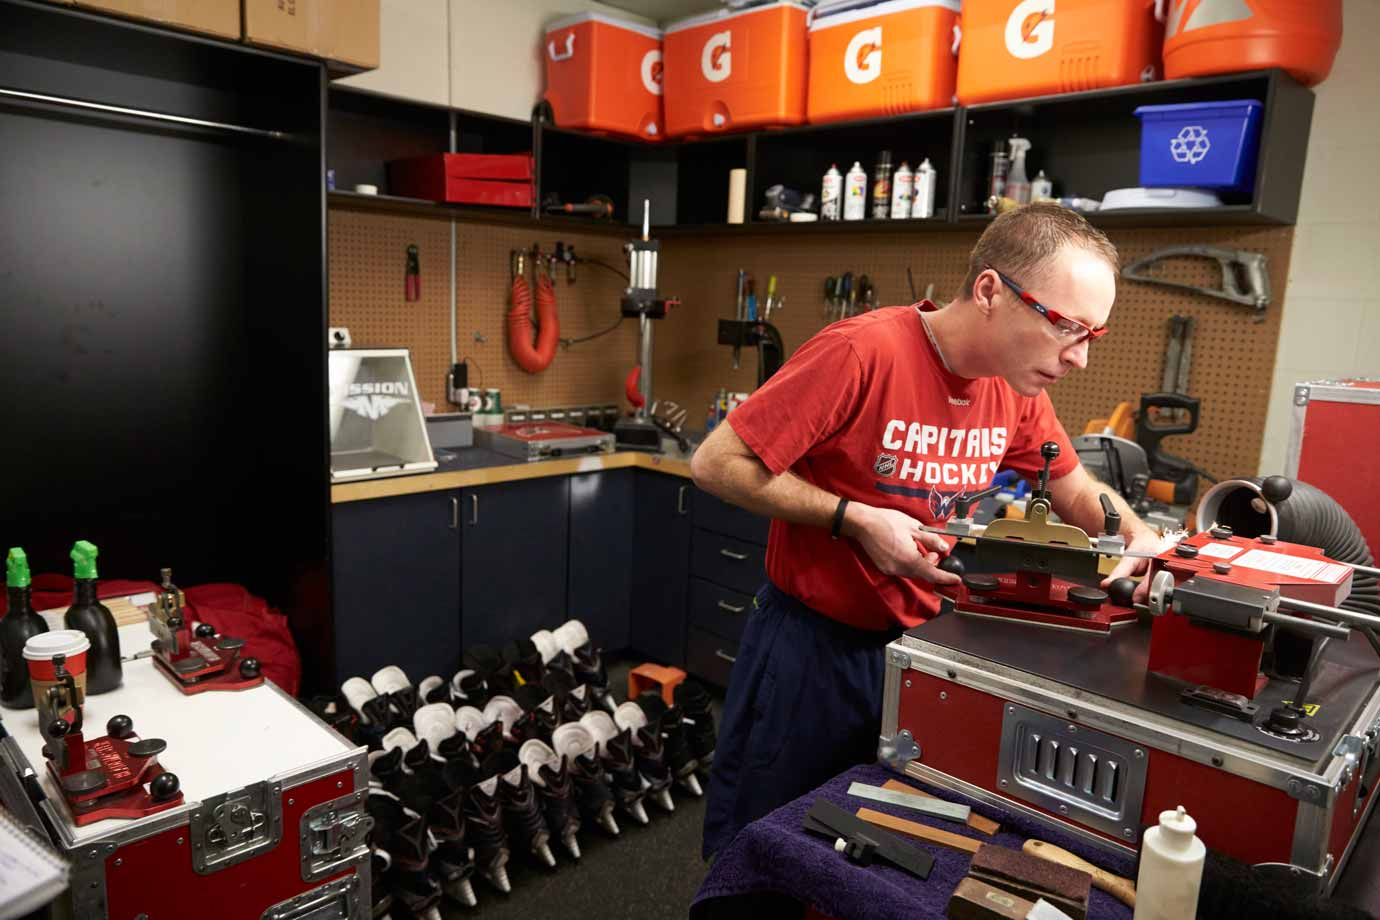 The staff gets to work bright and early the next day. By 7:49 a.m. equipment manager Brock Myles is sharpening skates.